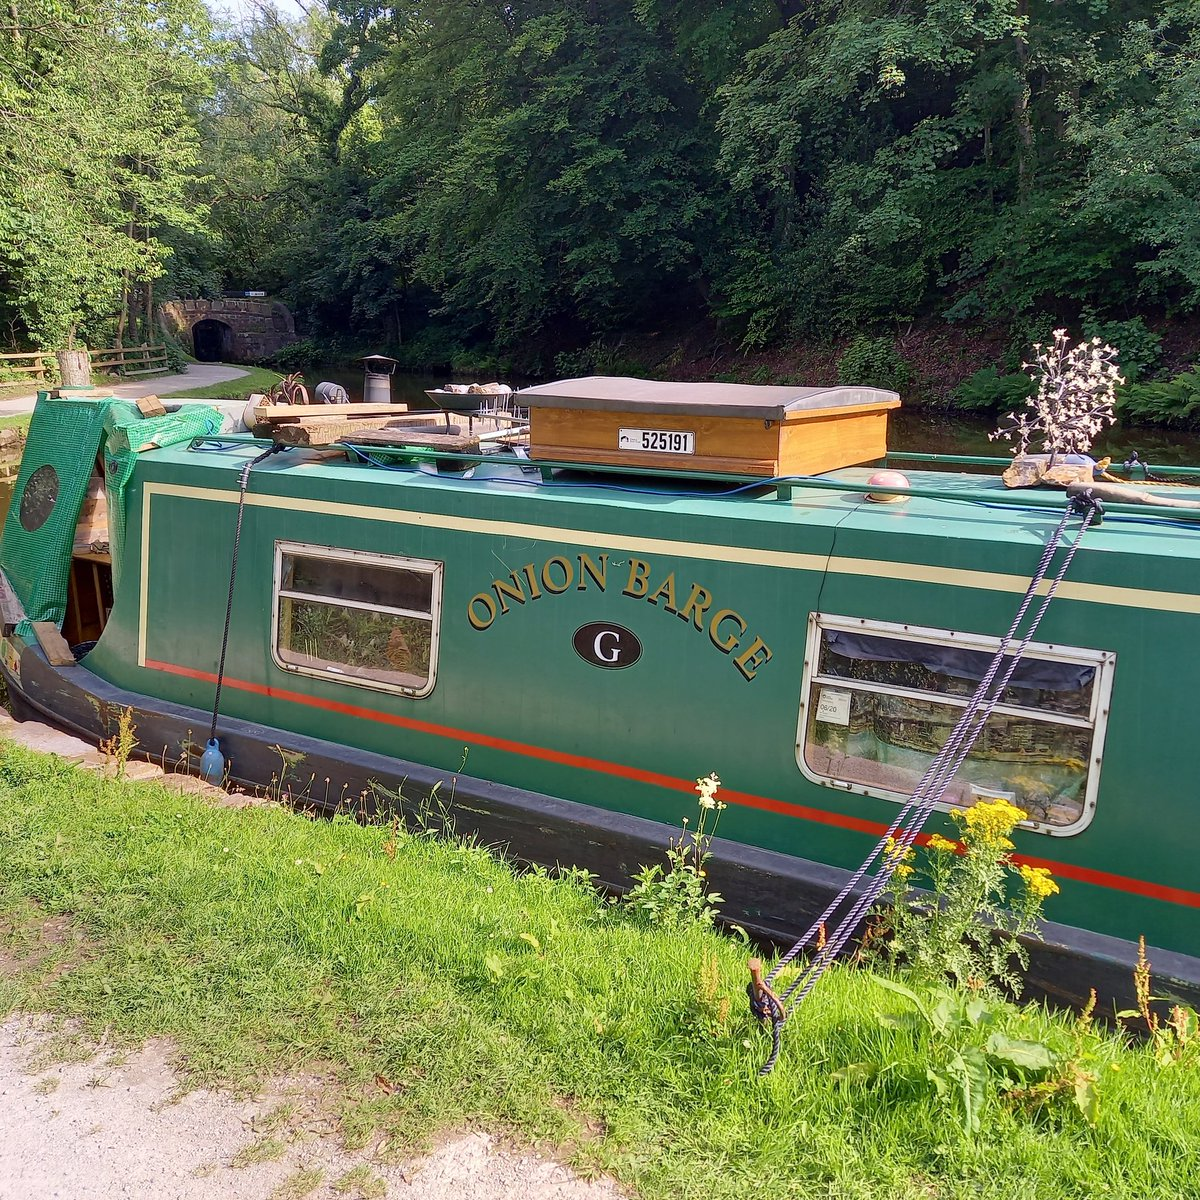 Best name for a narrowboat I've seen in a while.  #onionbargeg #canal #canals #barge #barges #narrowboat #narrowboats #canalboat #canalboats #marple #stockport #spottedinstockportpic.twitter.com/UgE3FS8MWy